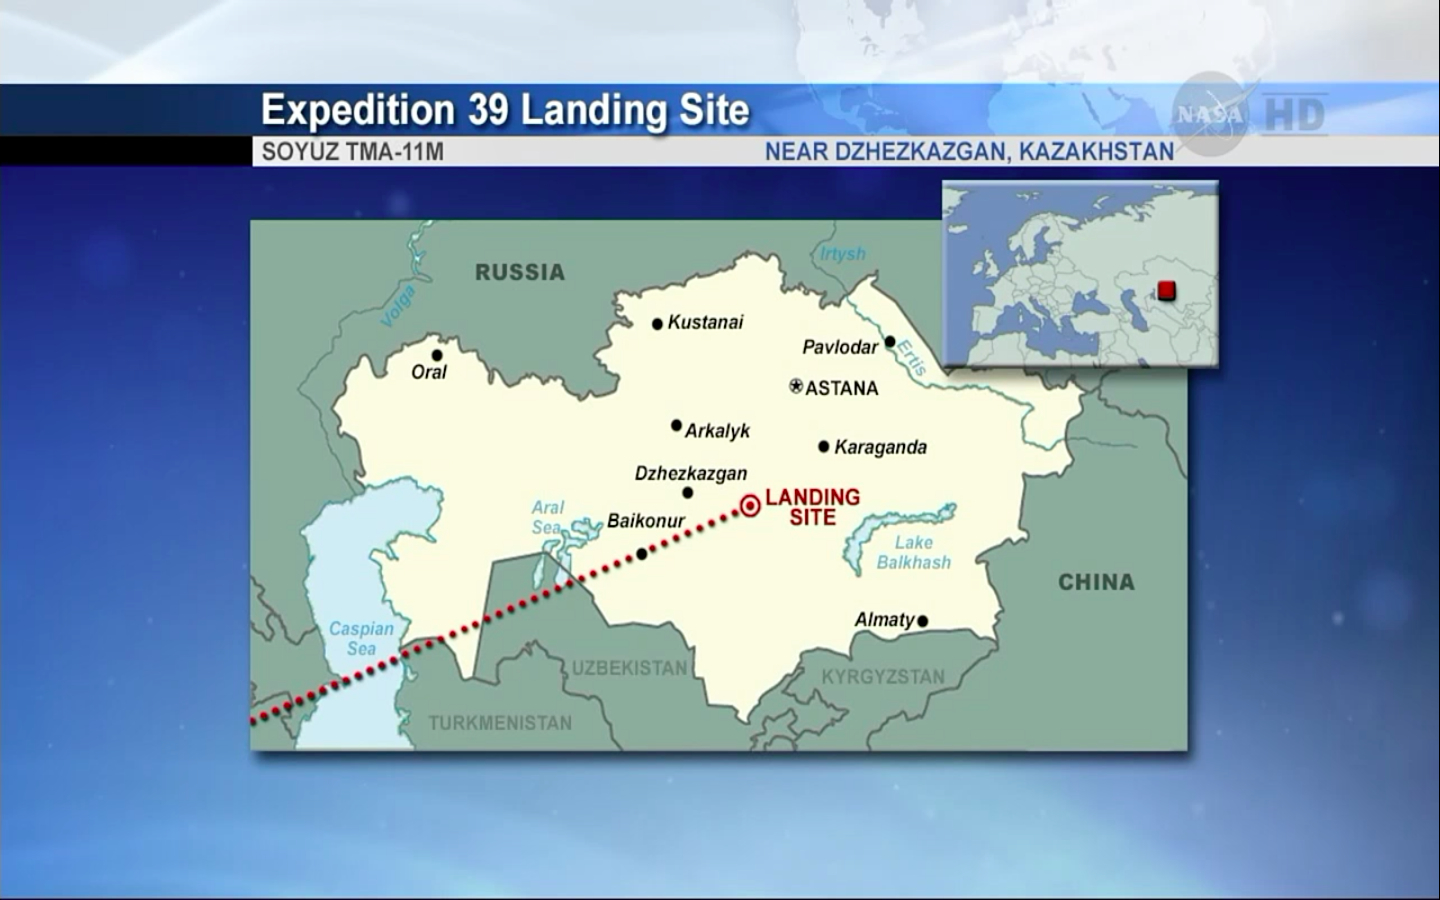 Expedition 39 Crewmembers' Landing Site